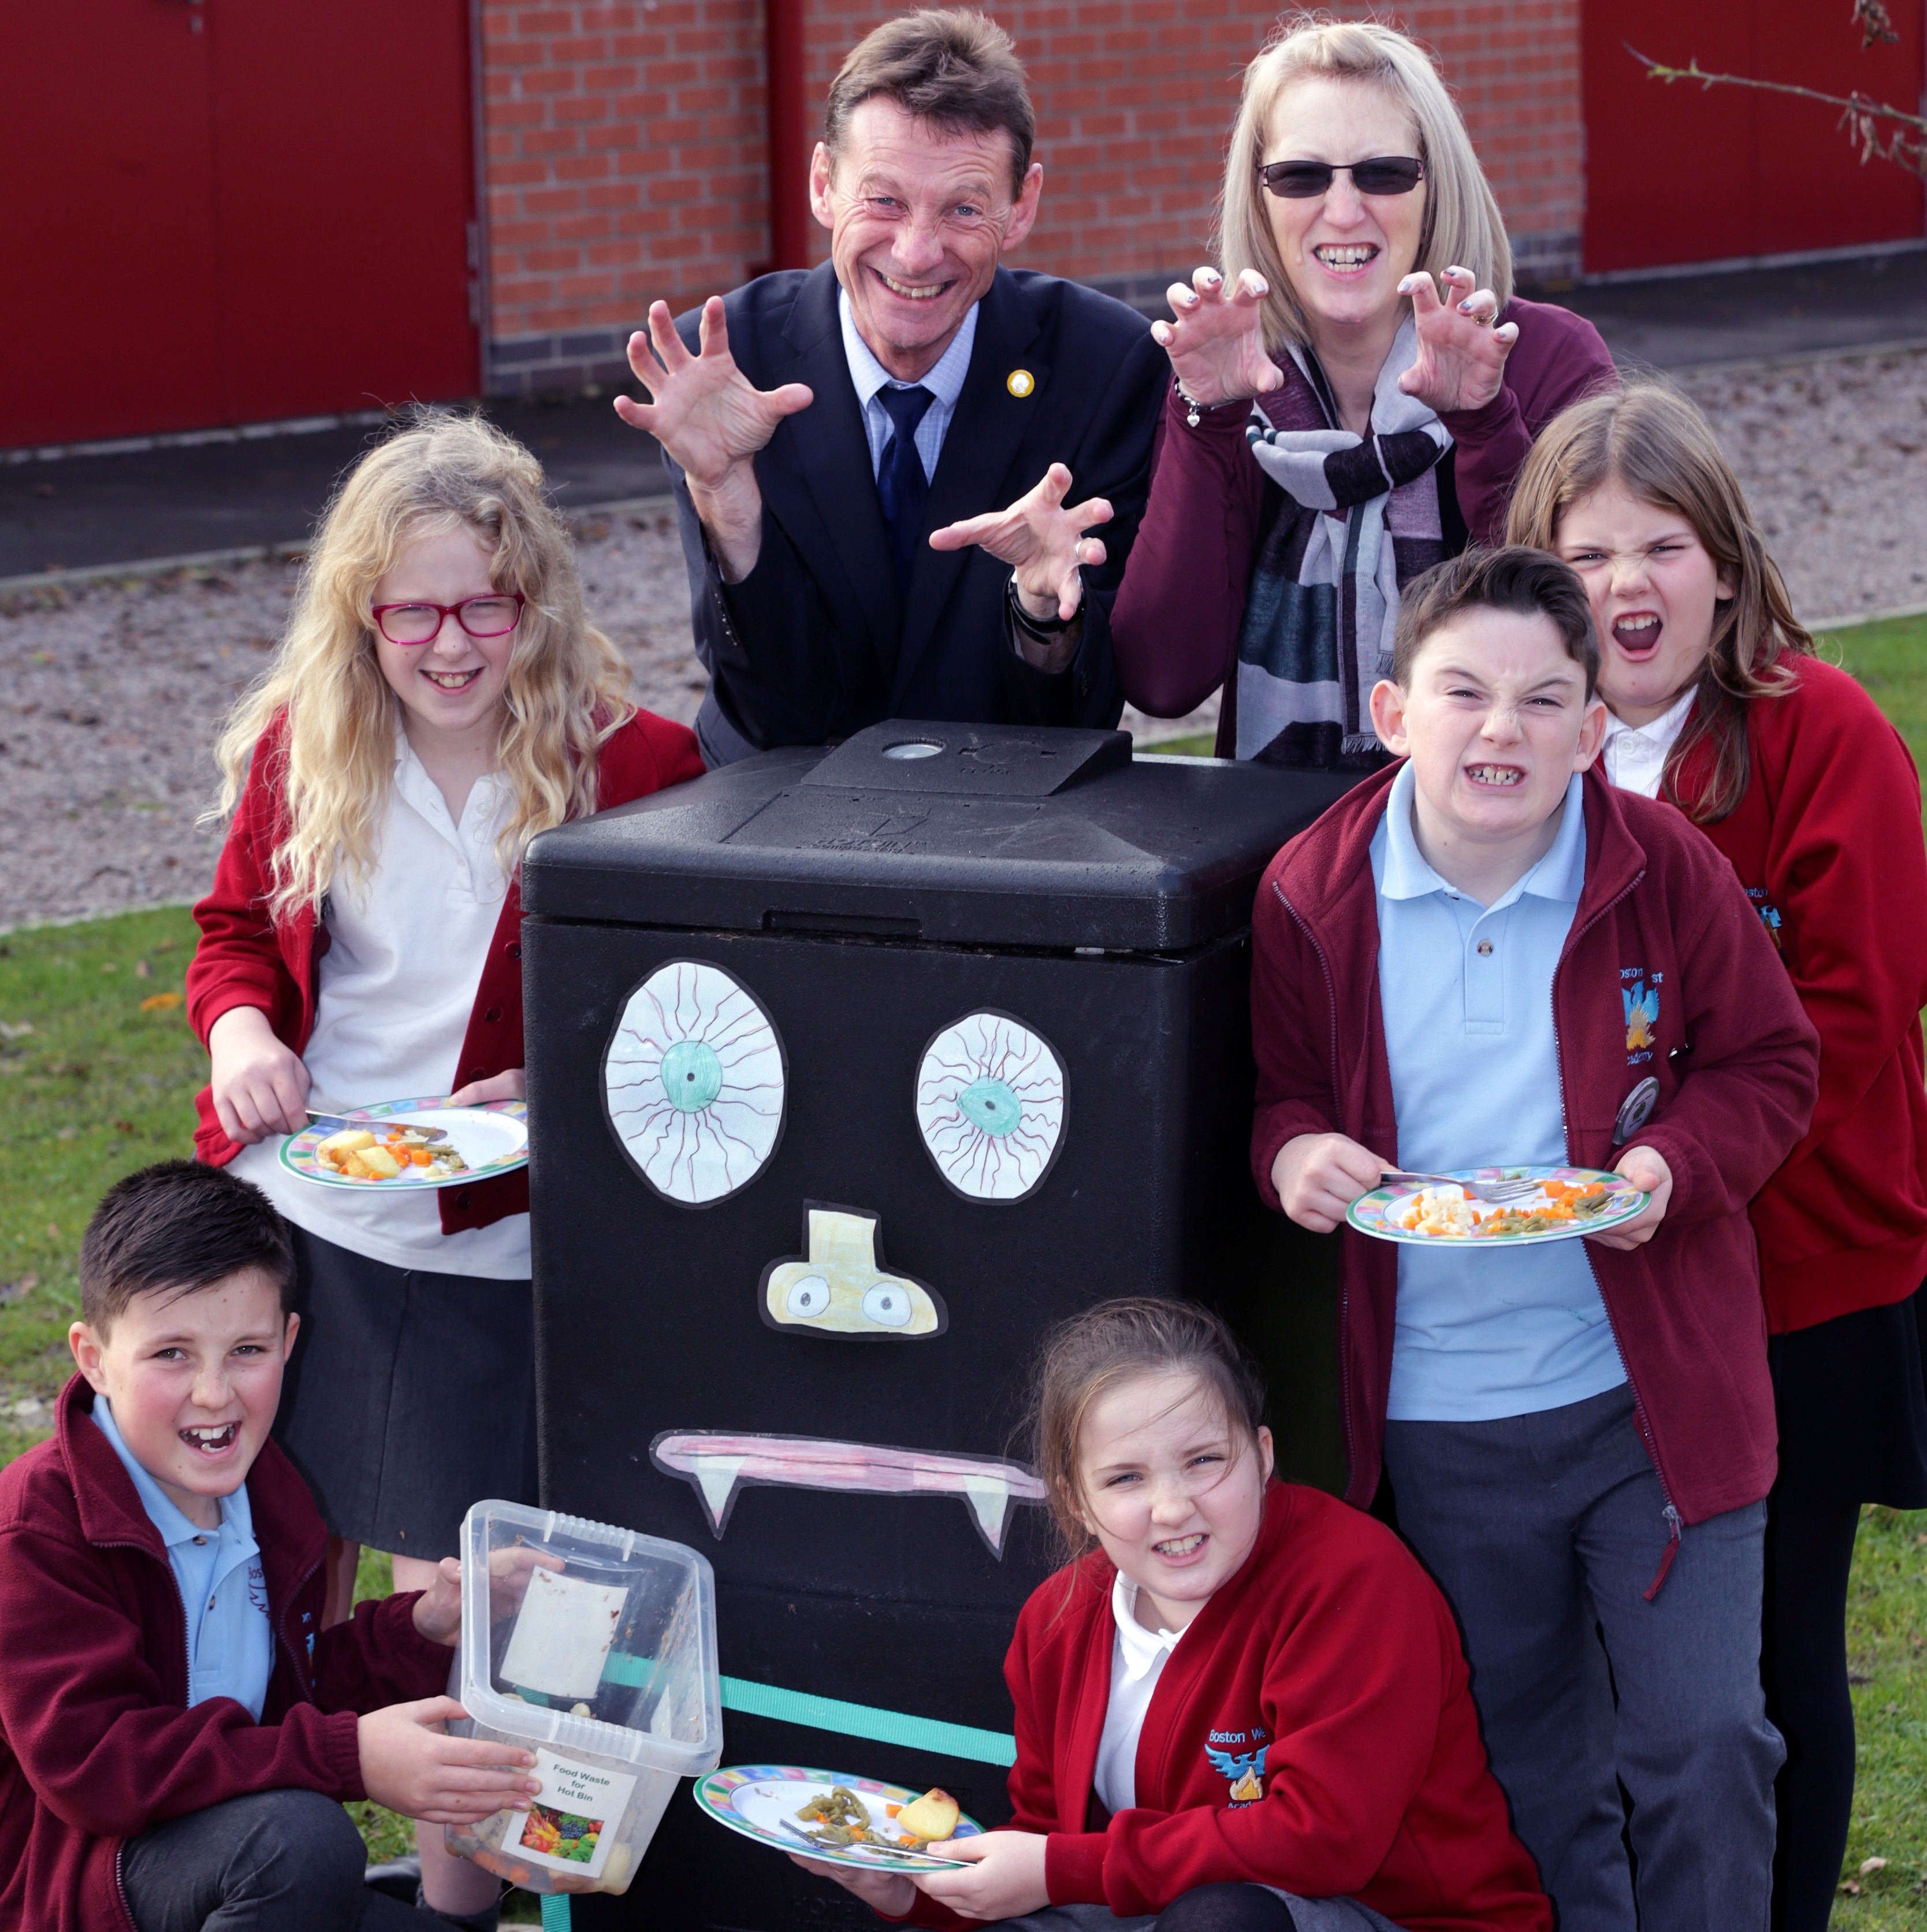 Boston West Primary School shows off its Composter Monster: Eco Club Leader Shirley Chain and Headteacher Mike Schofield with, front, from left, Oliver (11), Megan (11); middle - Hannah (10), Reece (10) and Evie (11)